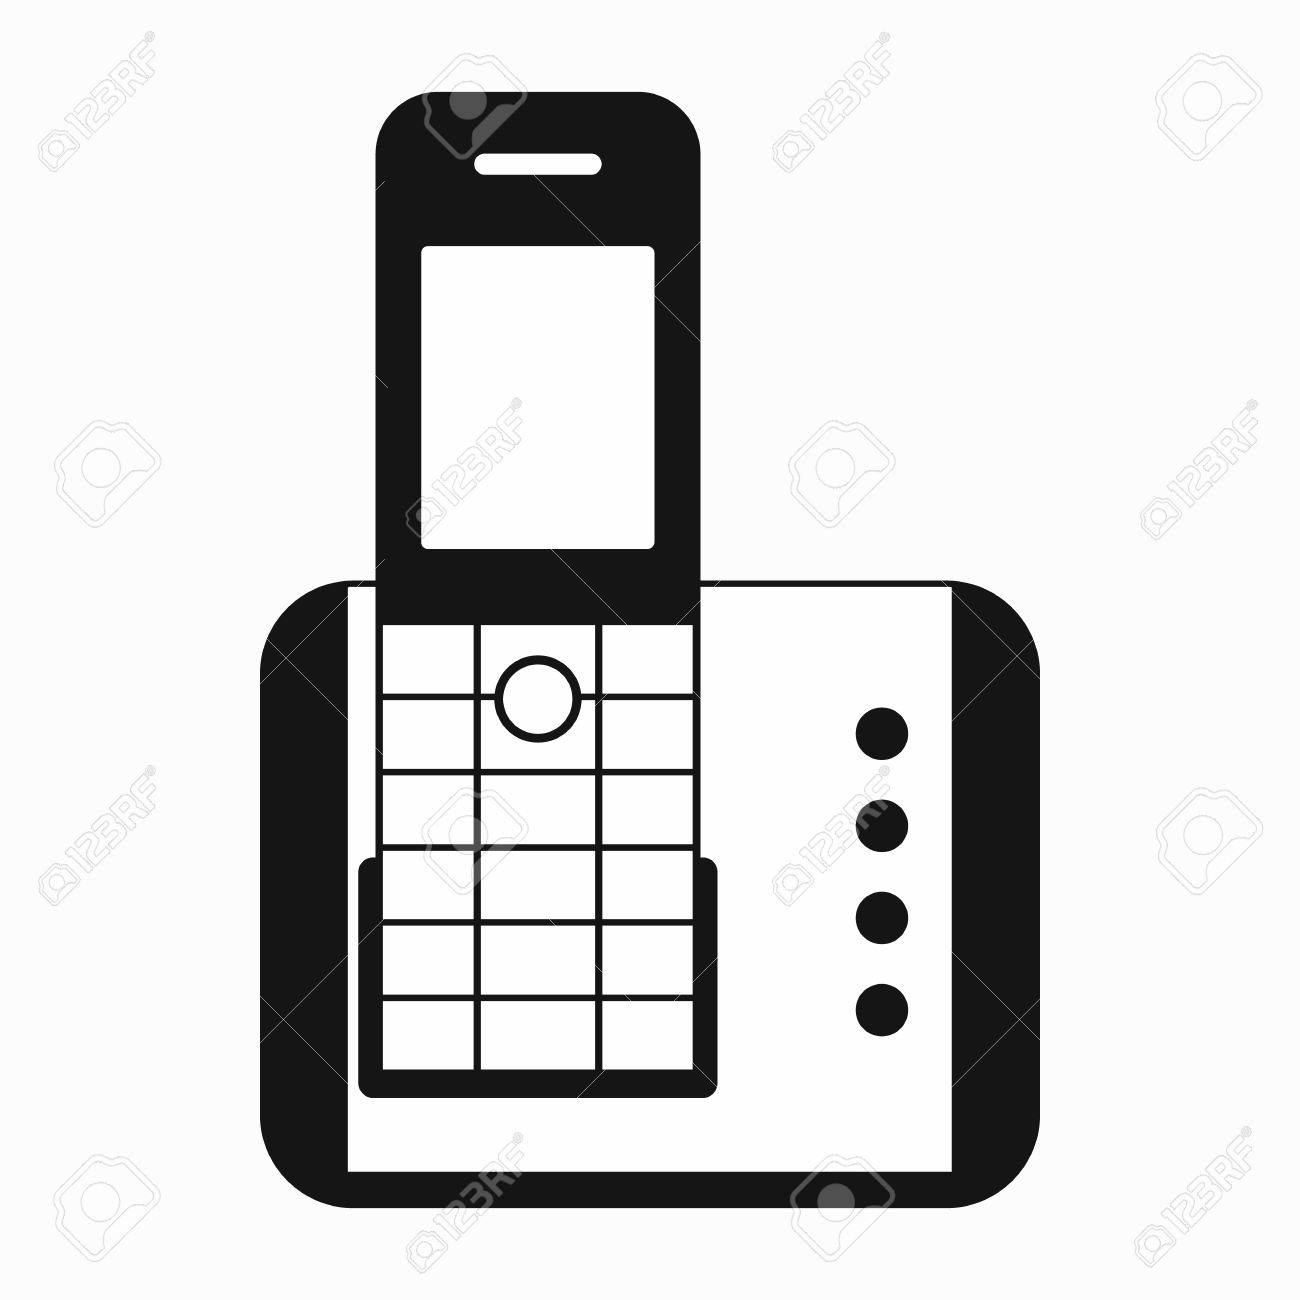 Cordless phone icon in simple style on a white background.